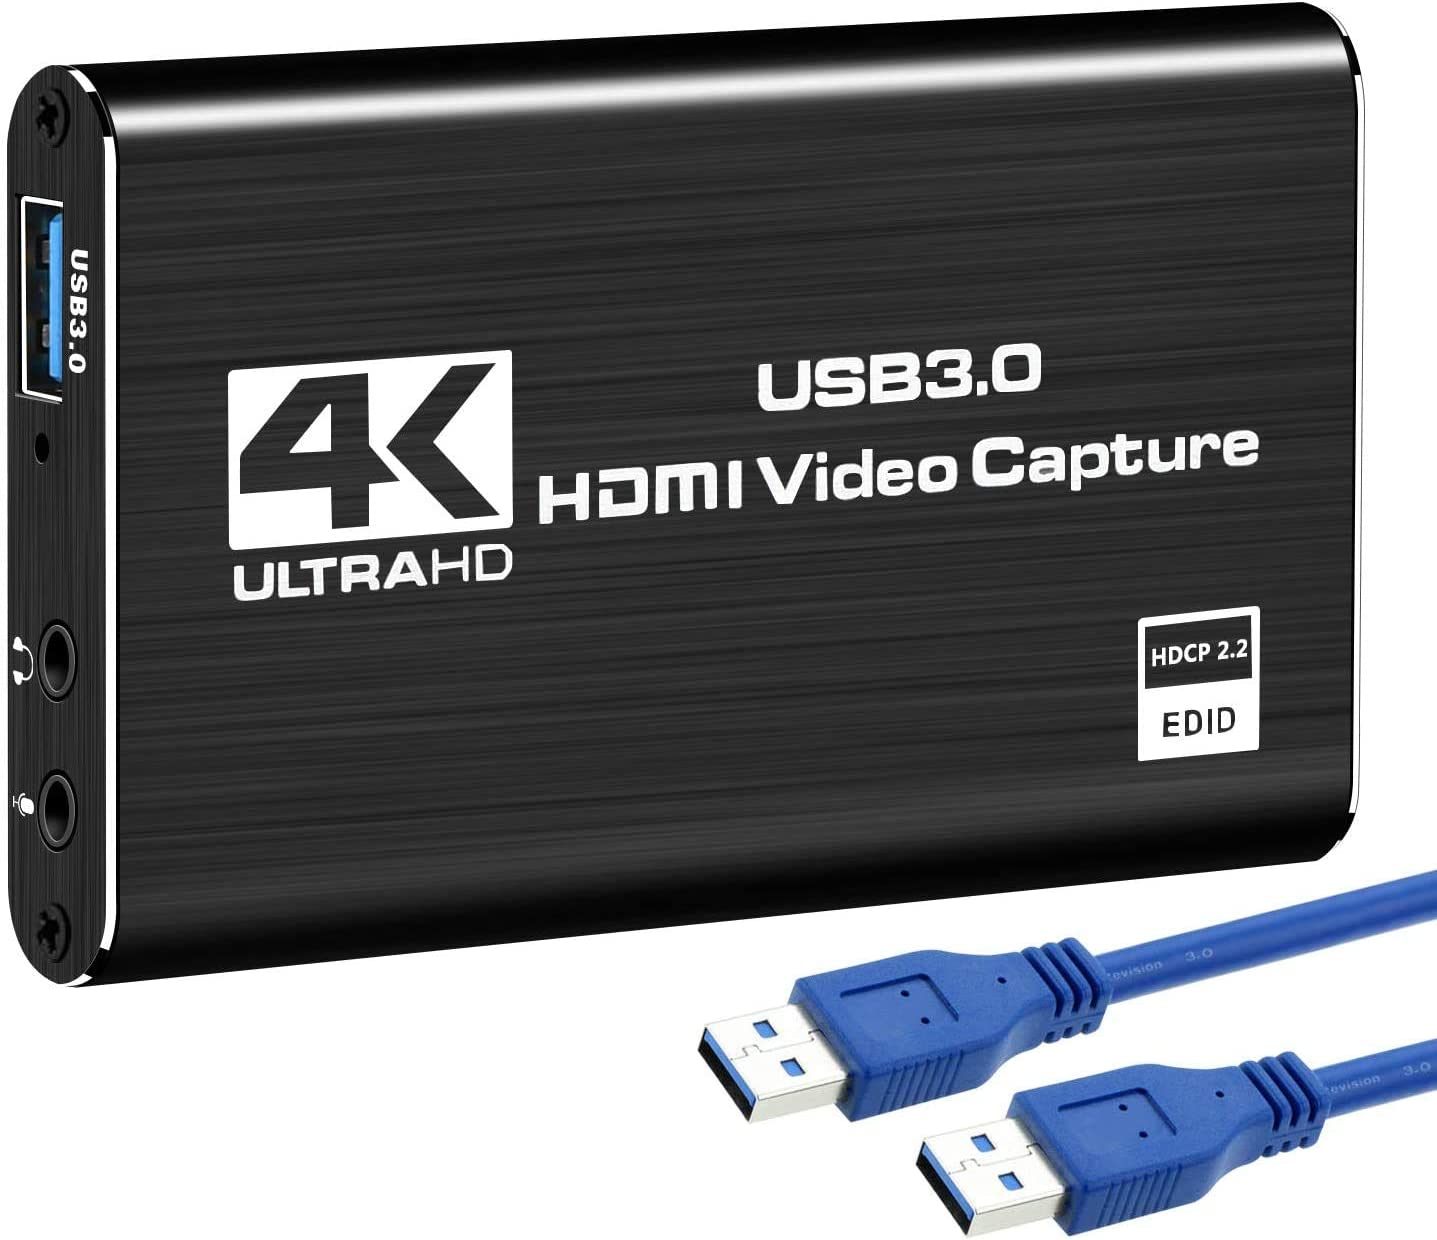 Rybozen 4K Audio Video Capture Card, USB 3.0 HDMI Video Capture Device, Full HD 1080P for Game Recording, Live Streaming Broadcasting